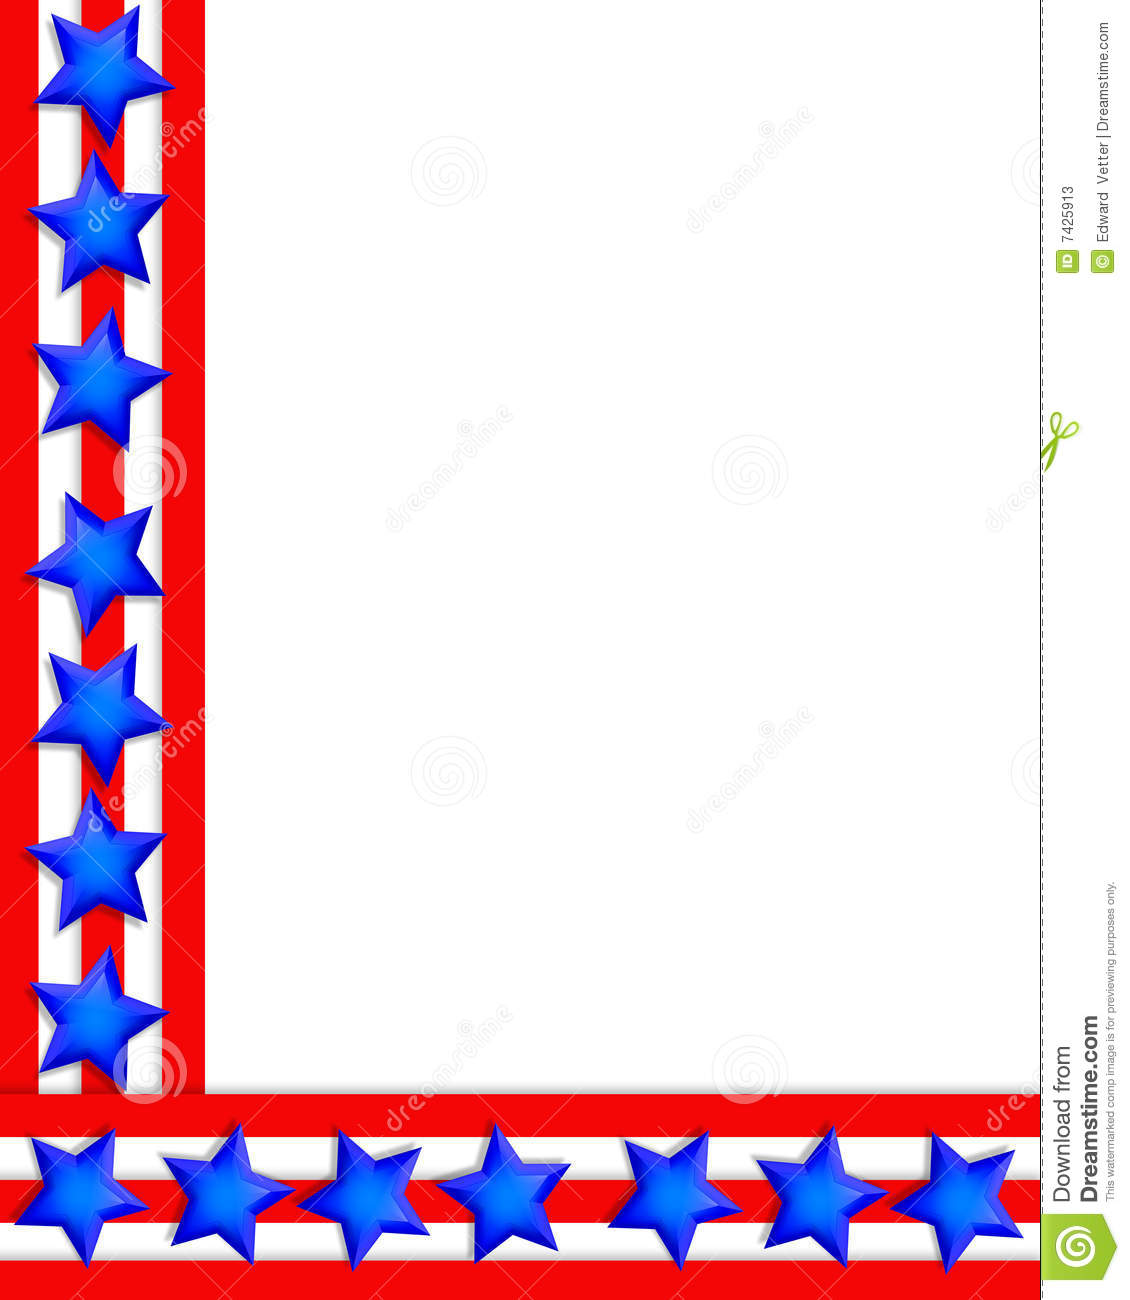 hight resolution of 4th of july fireworks border